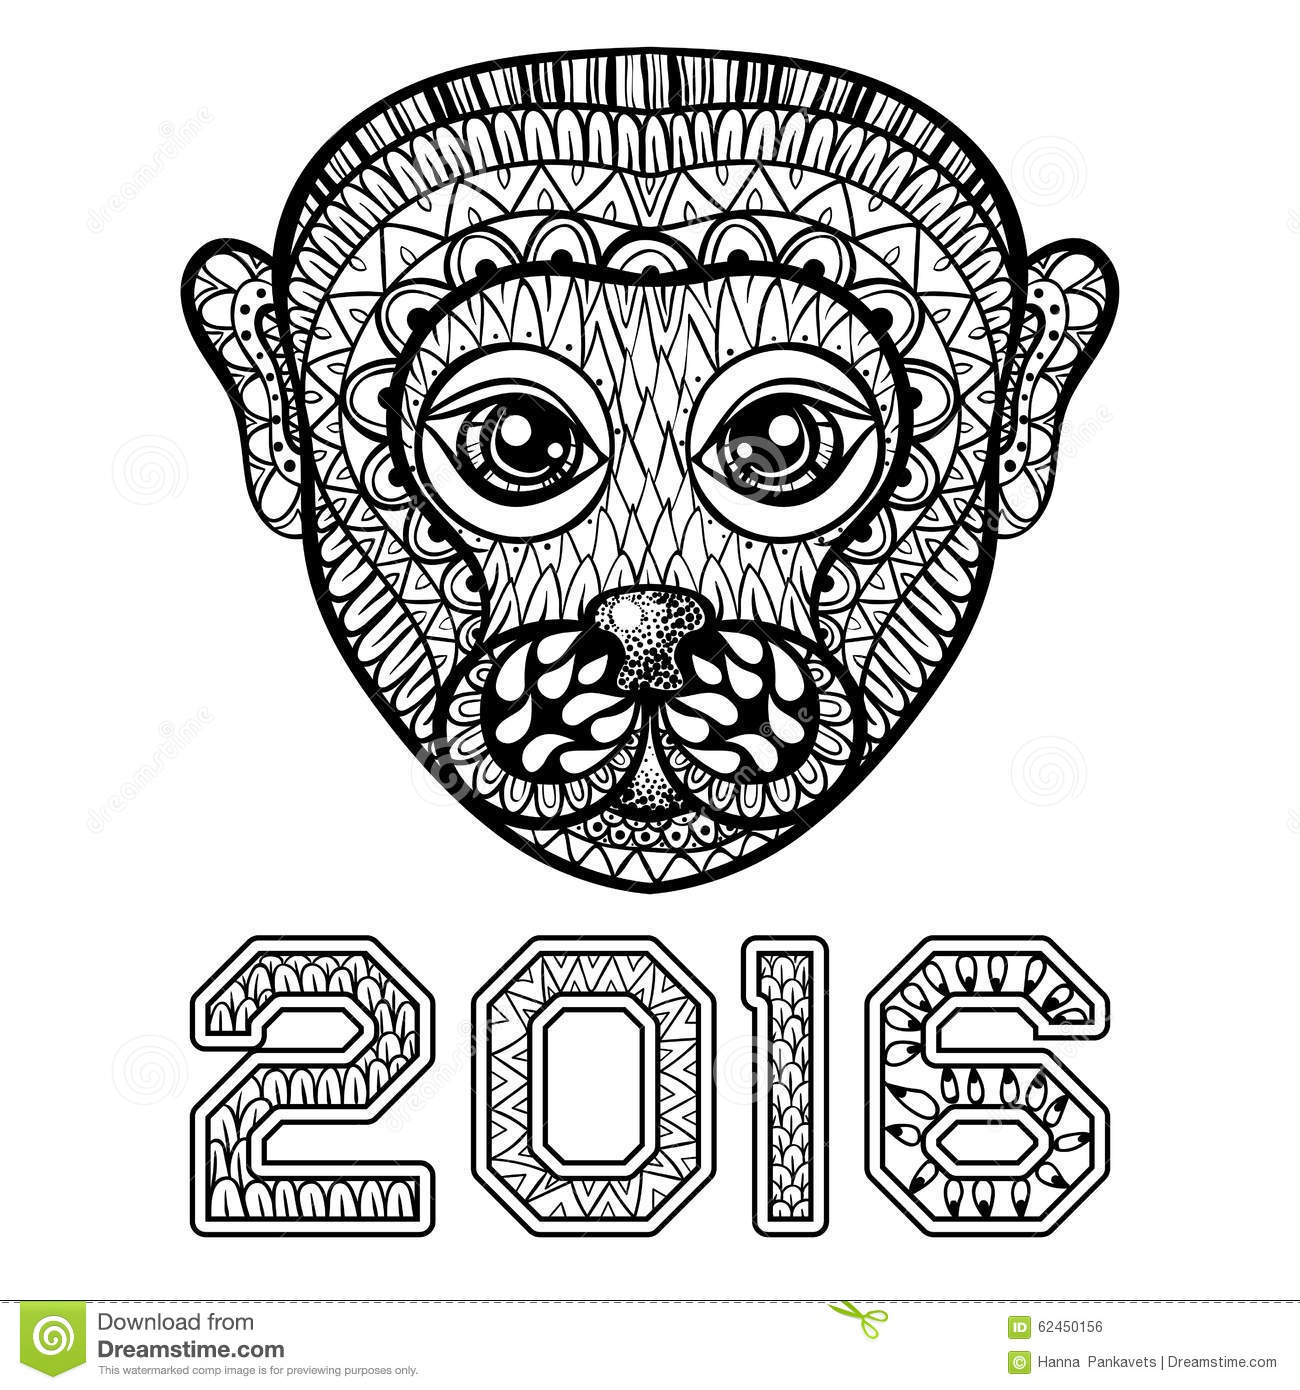 Free coloring pages new year 2016 - 2016 Adult Anti Background Coloring